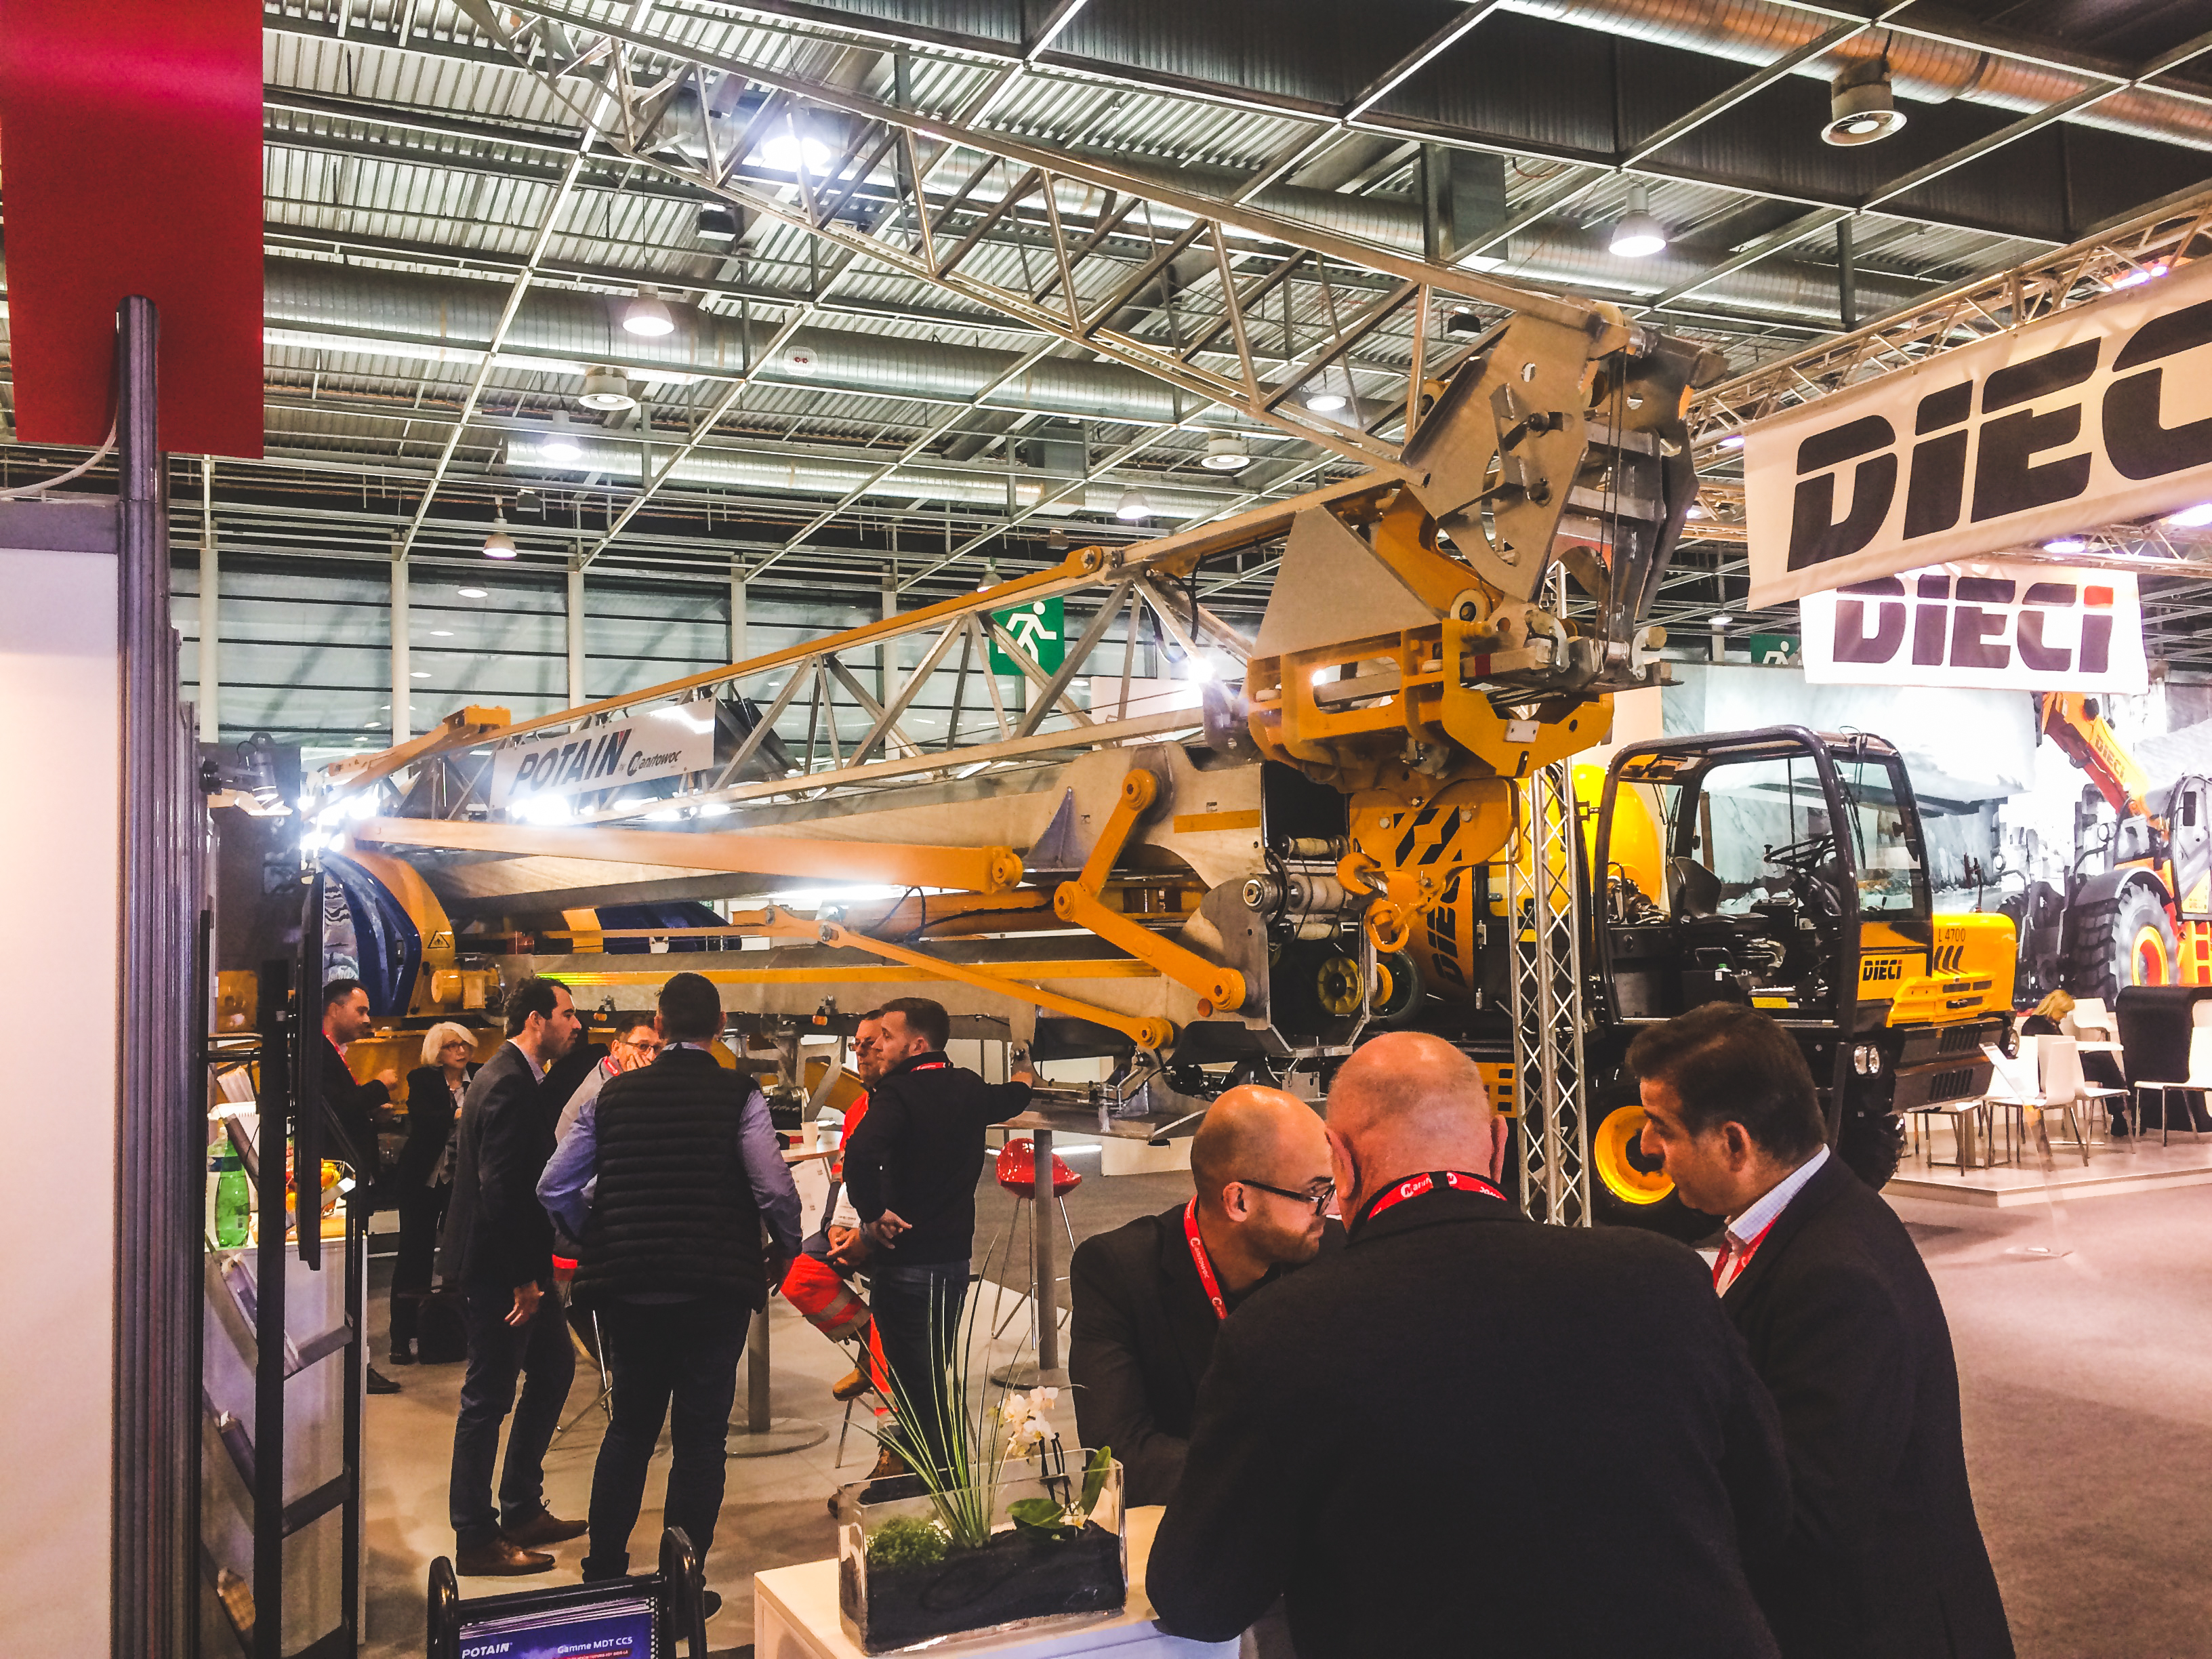 Potain once again showcased the strength of its self-erecting crane range at Batimat 2017. From November 6 – 10, Potain occupied both indoor and outdoor booths at Batimat, displaying two Igo M cranes that are ideal for small contractors and other lifters that require compact, easily transportable lifting solutions.